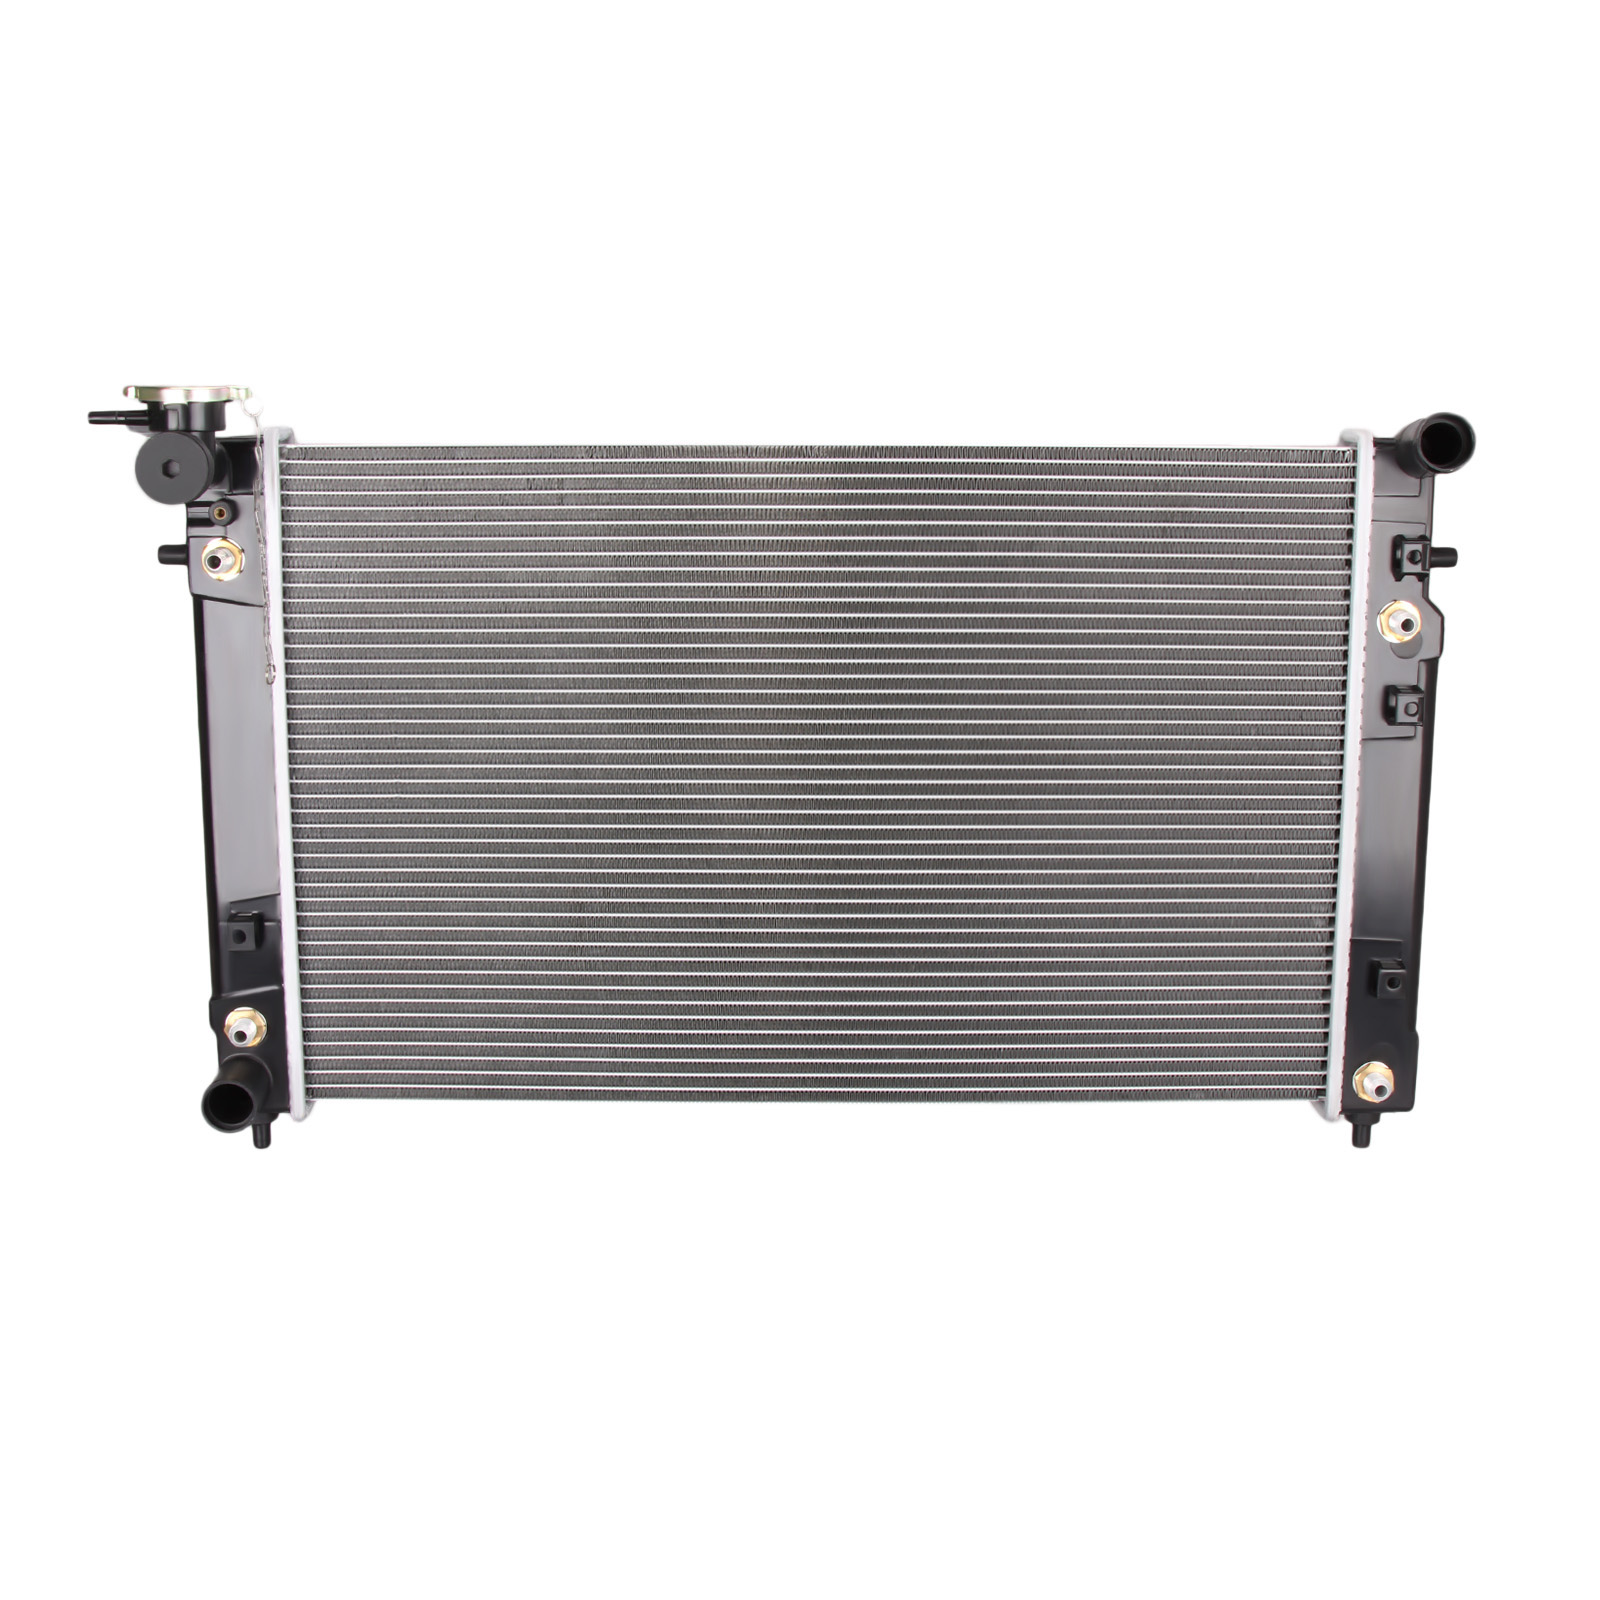 Premium Radiator For HOLDEN VT VX COMMODORE V6 '97-'02 Dual Oil Cooler AT/MT NEW